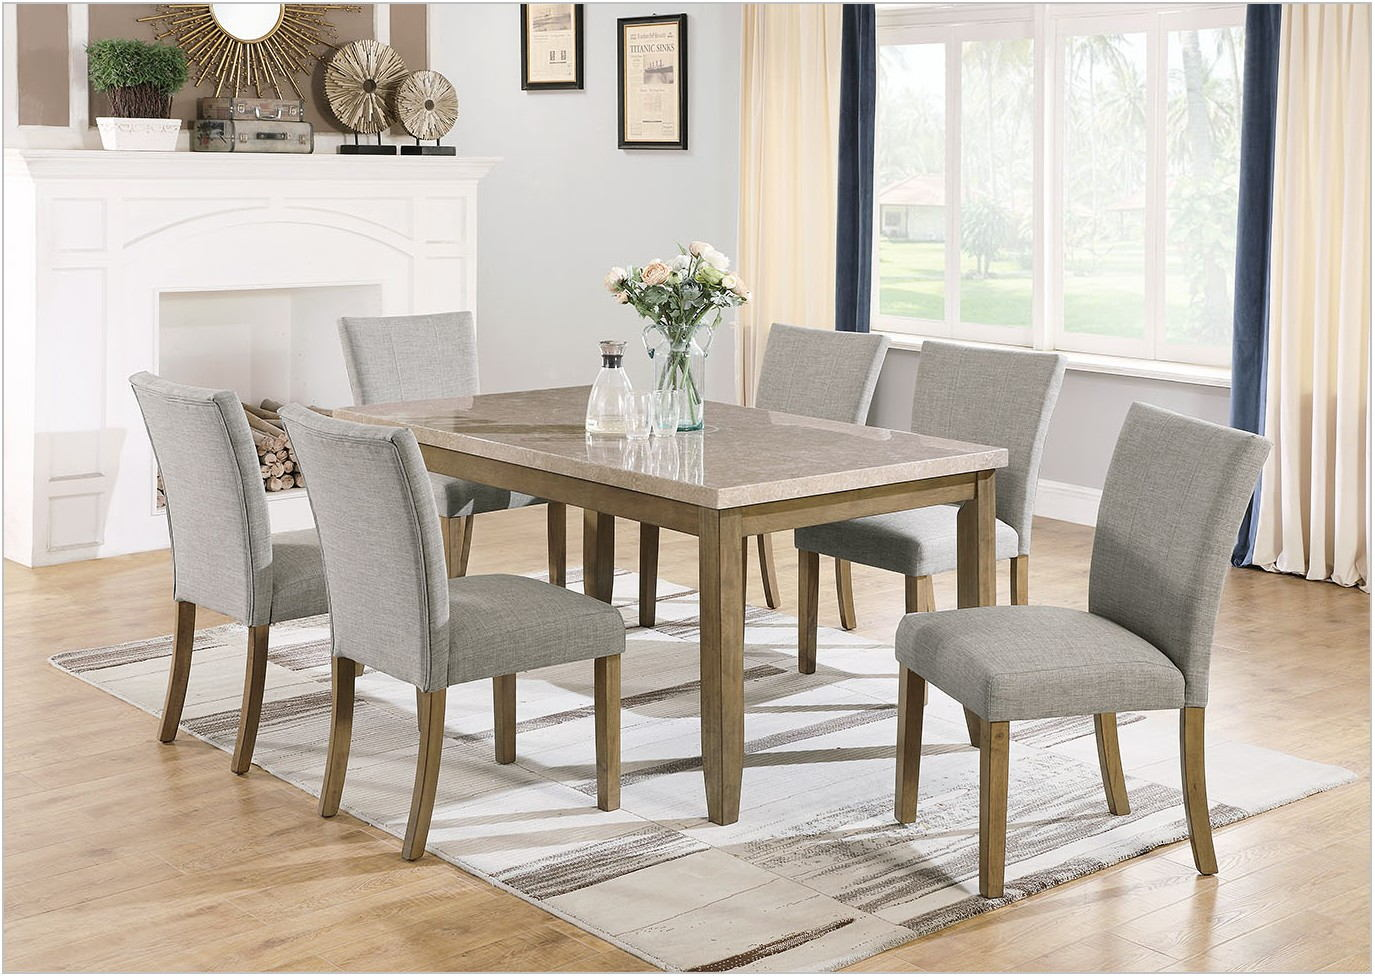 Ivan Smith Dining Room Sets